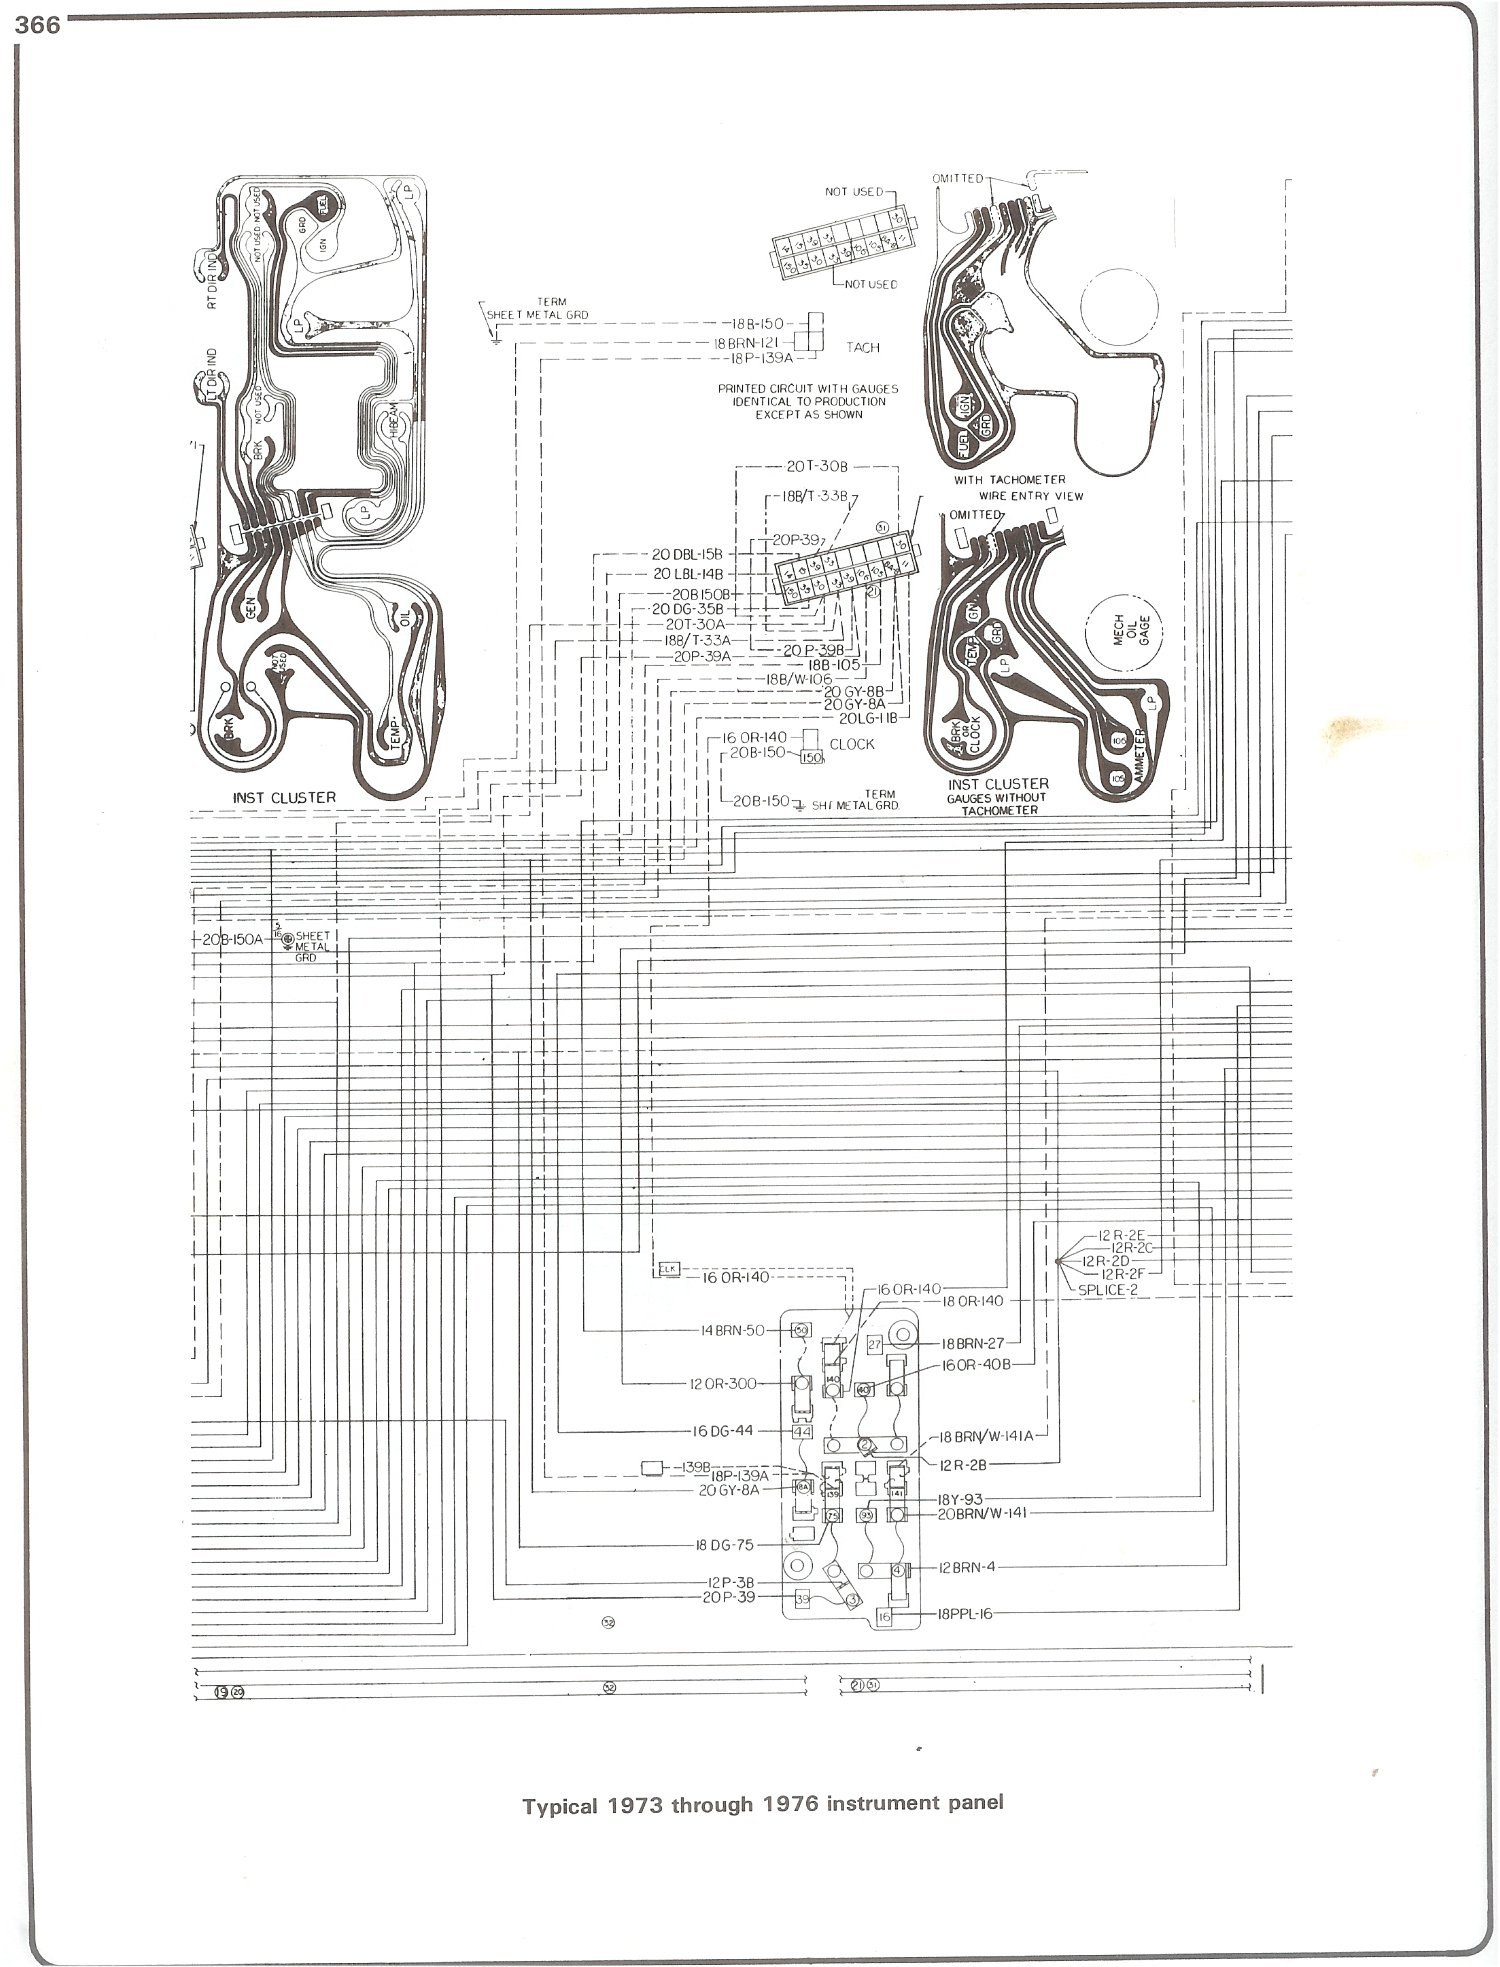 76 Chevy C10 Wiring Diagram, 76, Get Free Image About